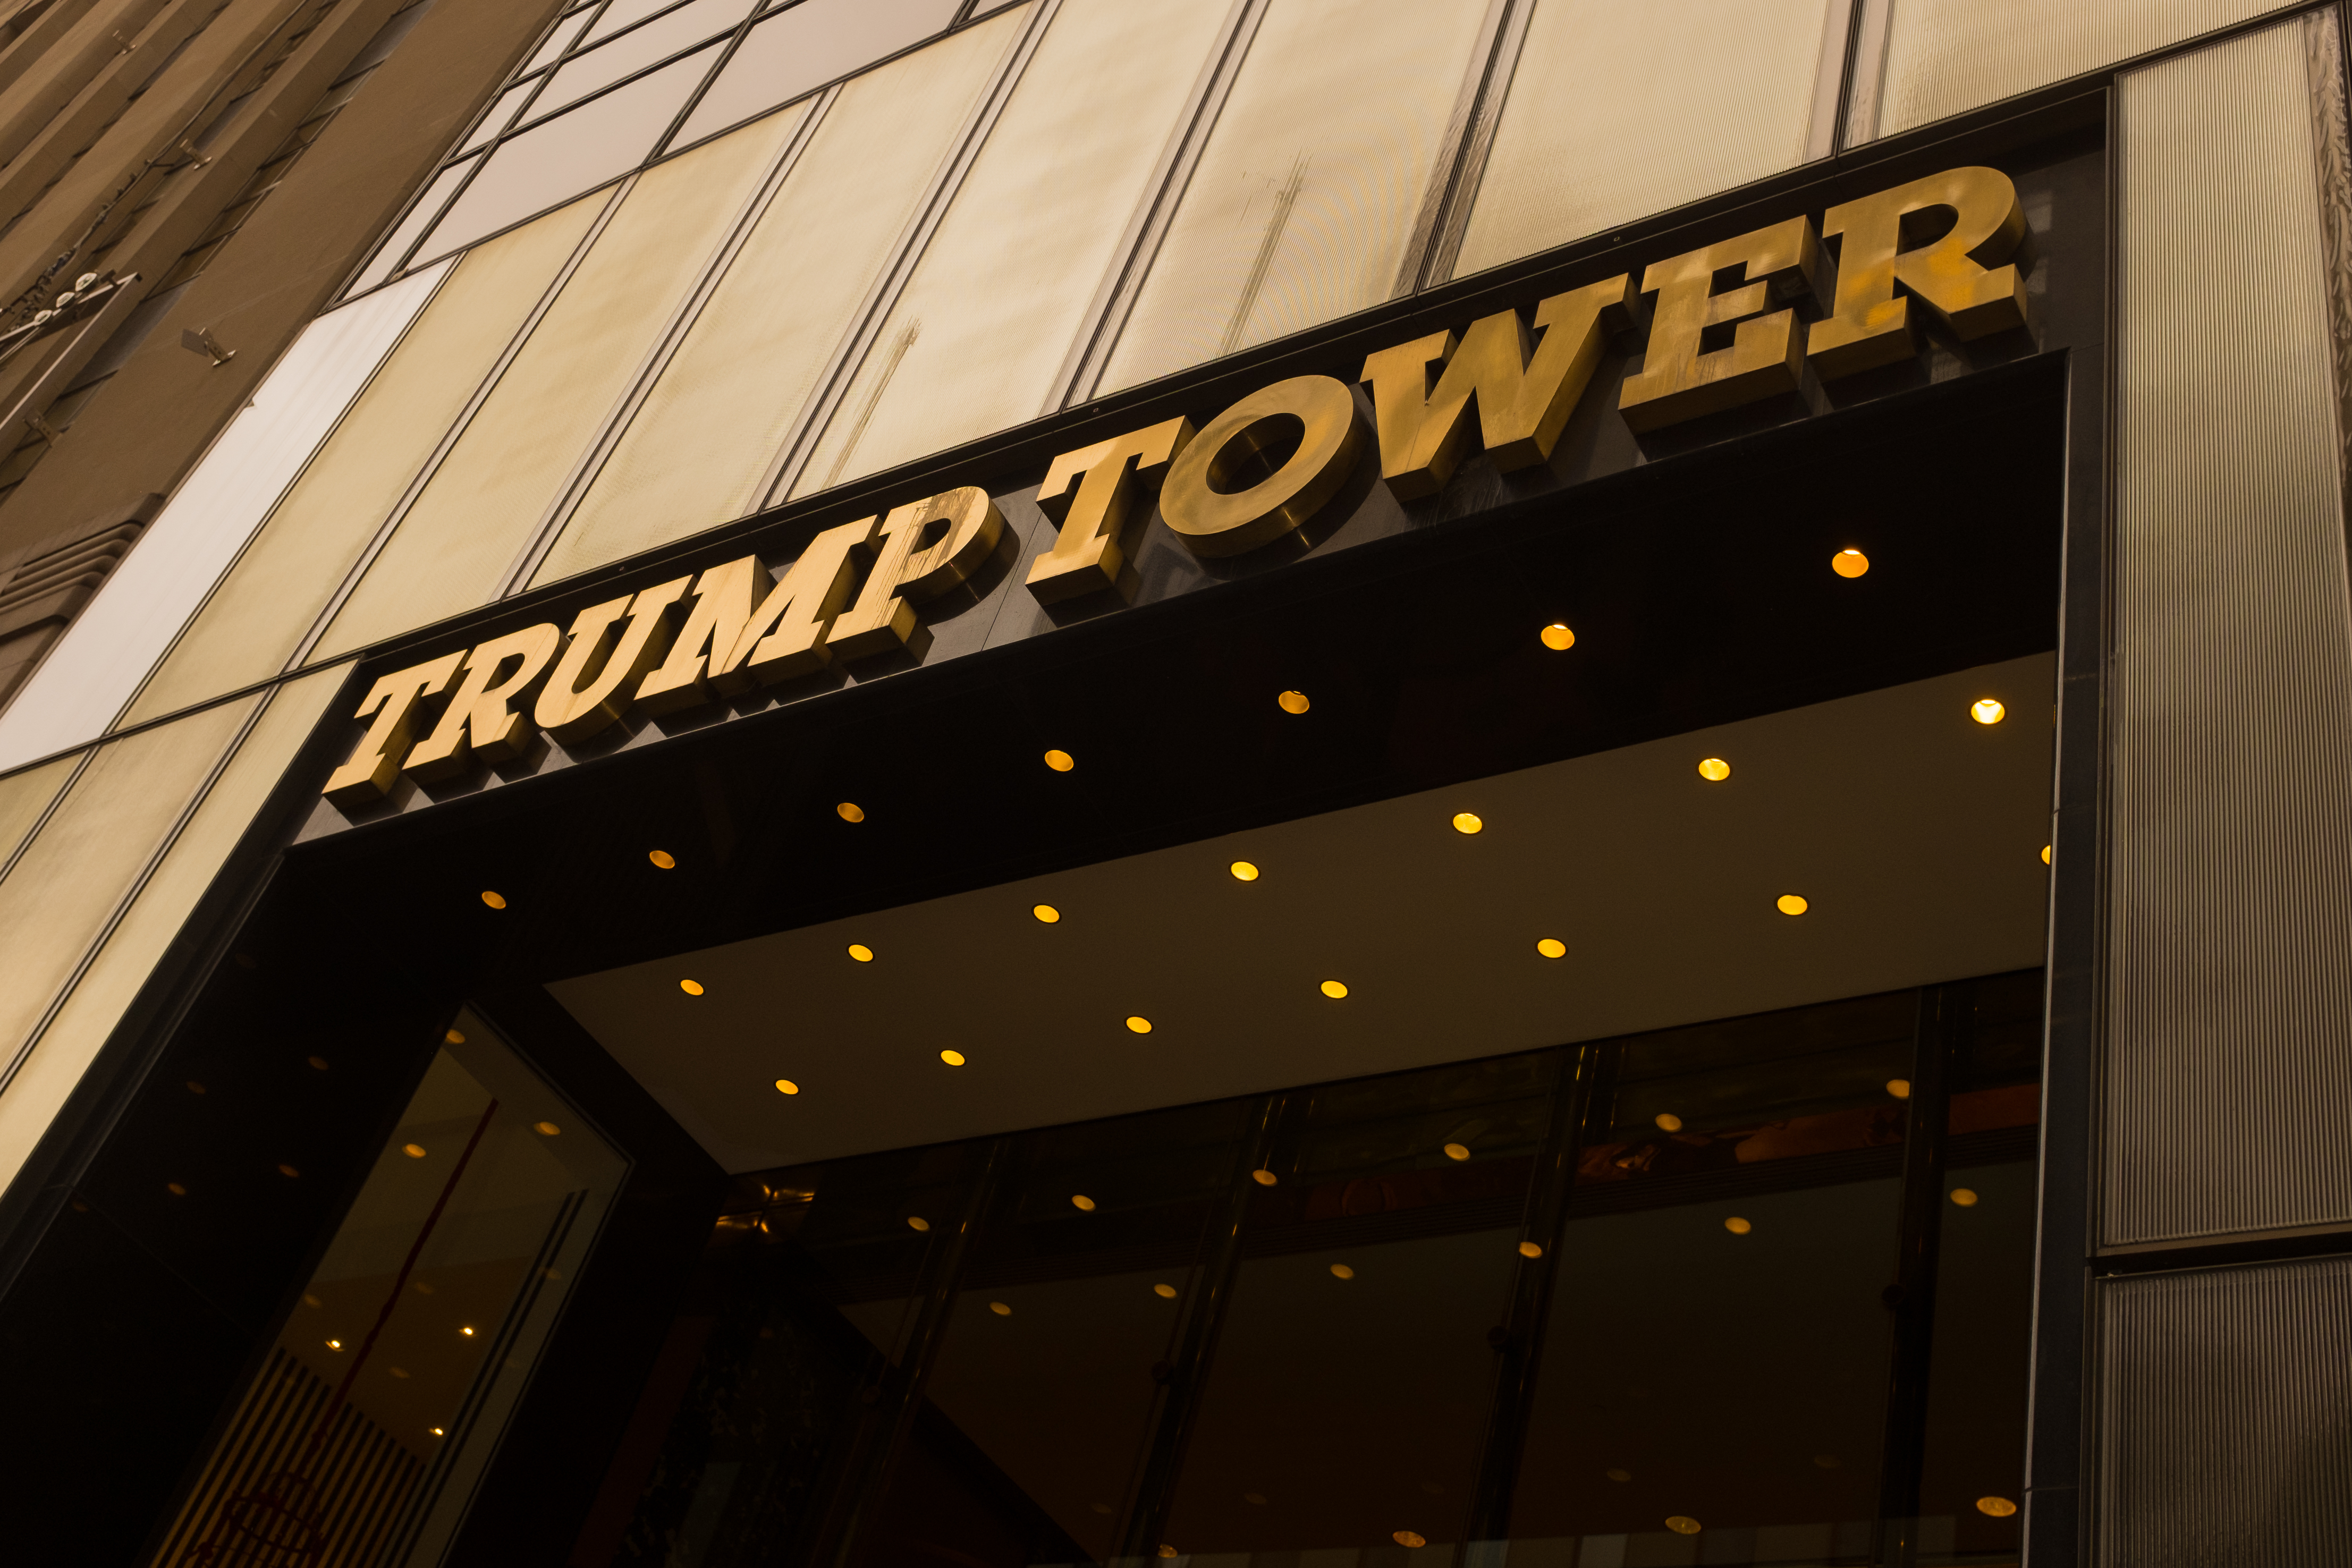 A general view of the signage above the entance to the Trump Tower on 21st January 2017 in midtown Manhattan, New York City